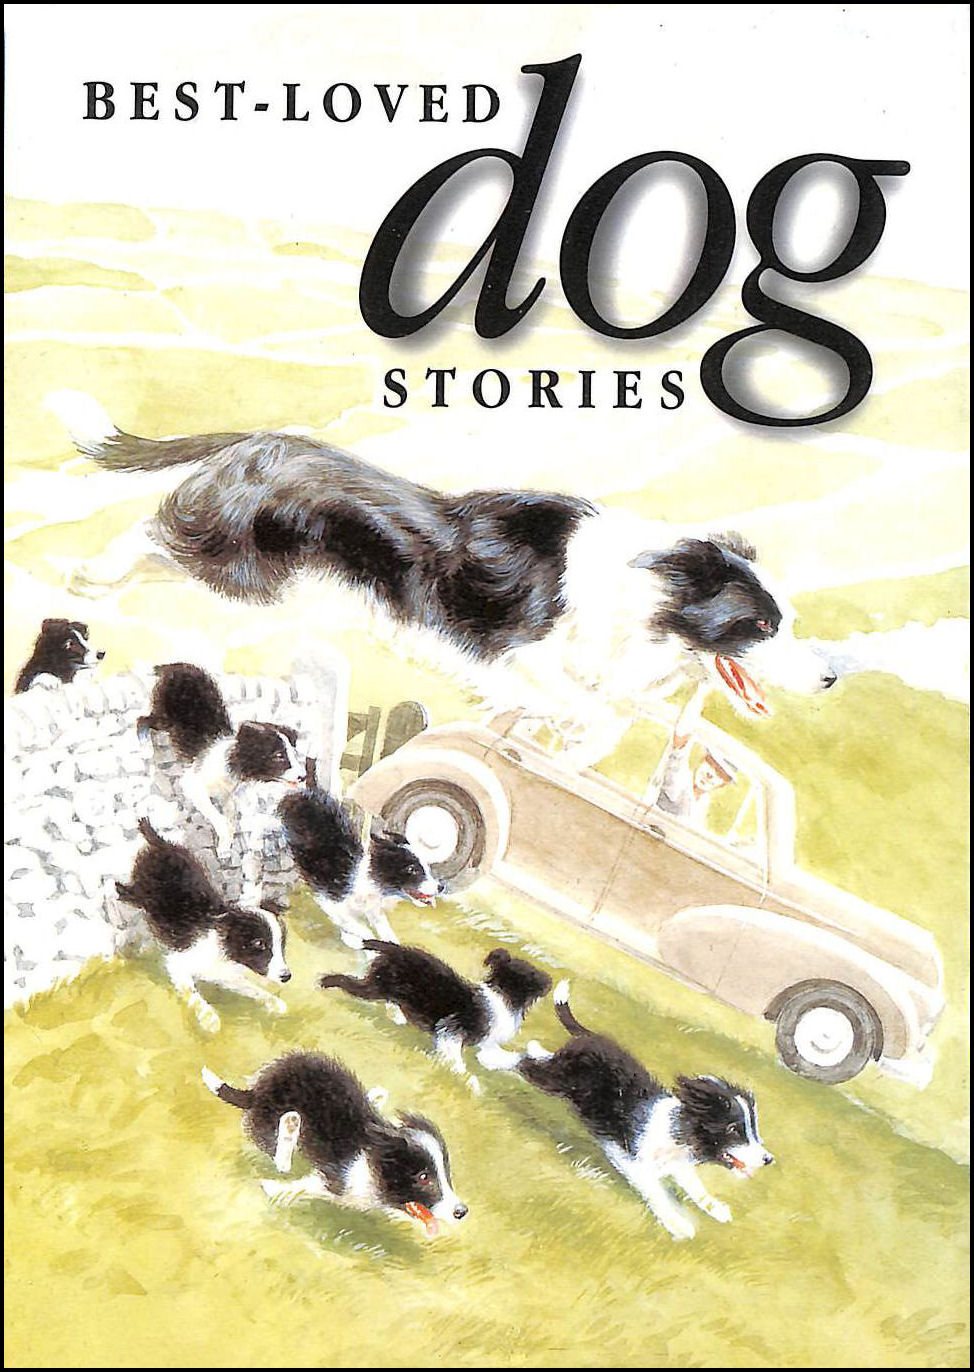 Best-loved Dog Stories, Geldart, William [Illustrator]